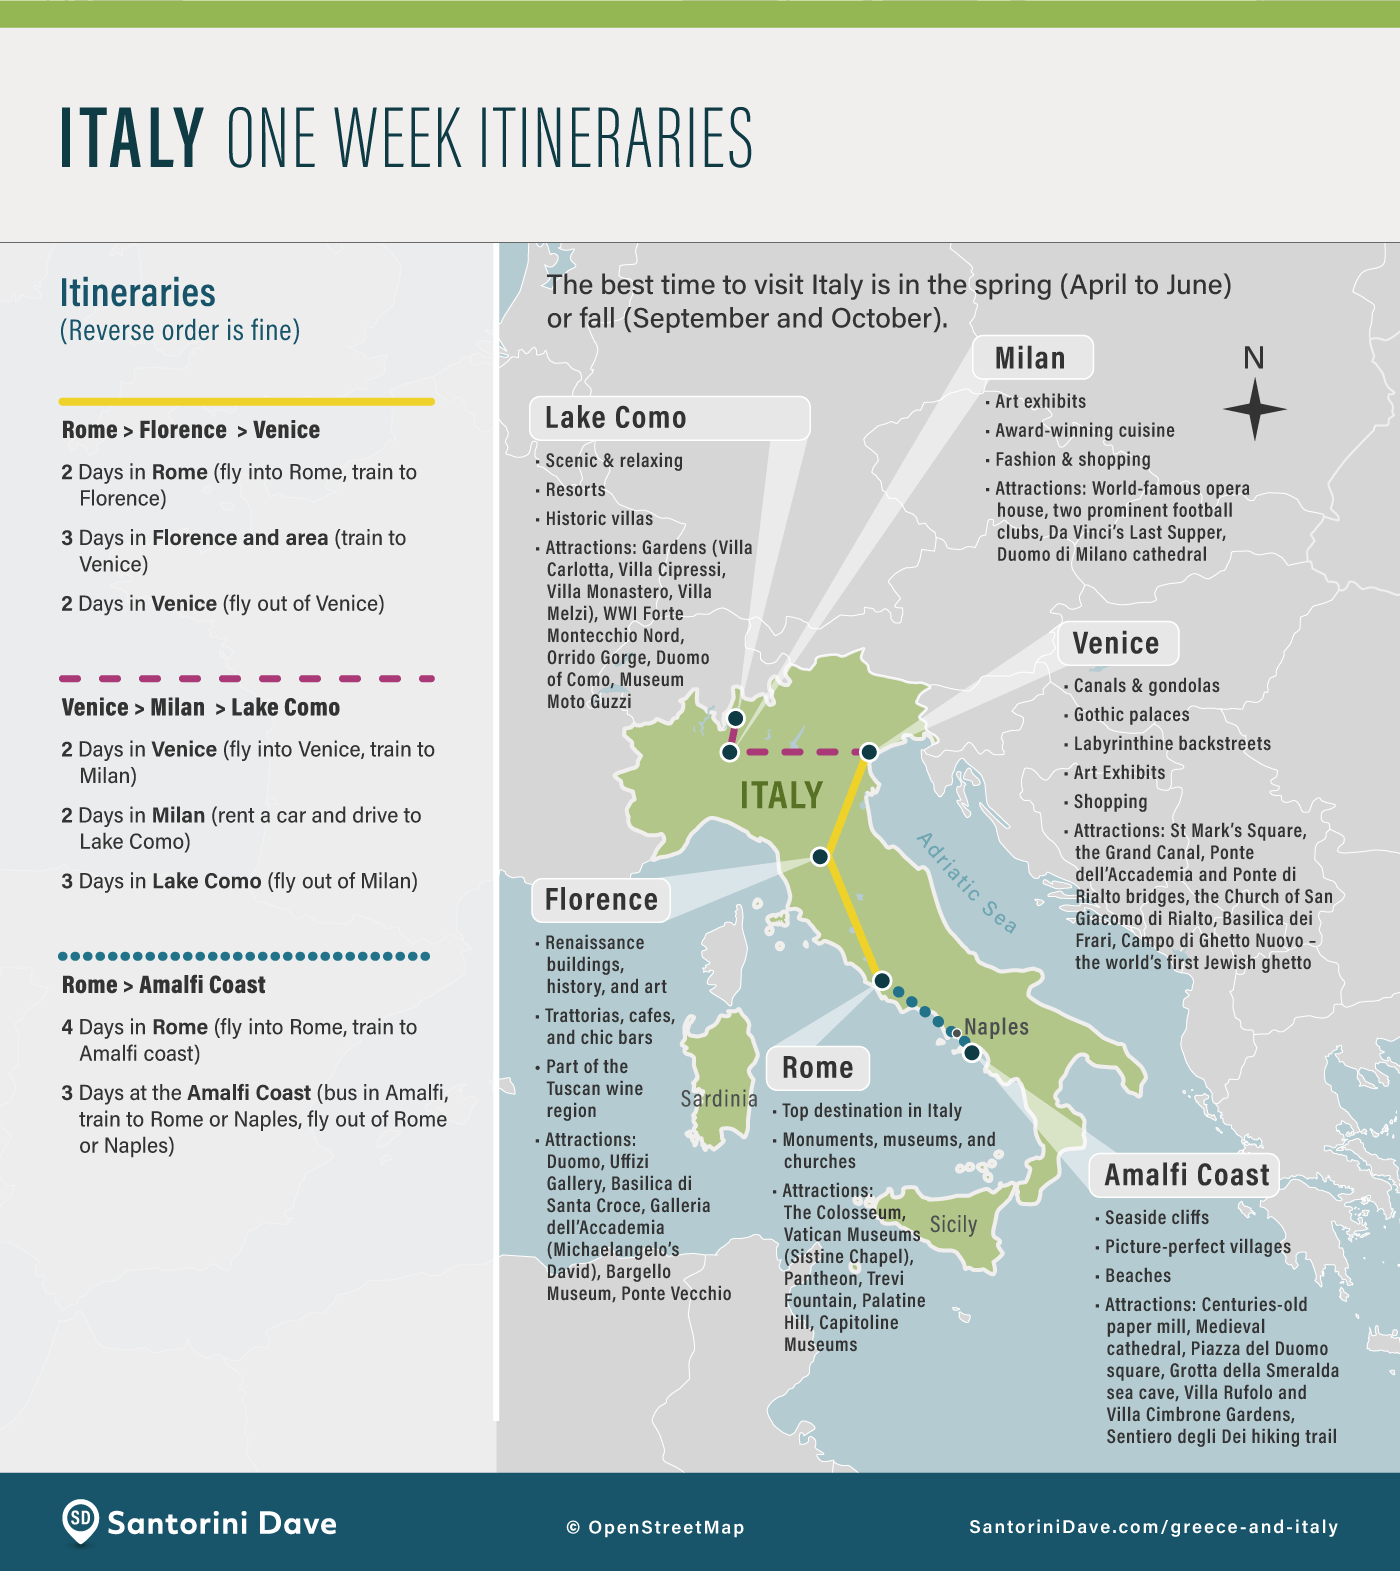 Map of suggested one week itineraries for Italy